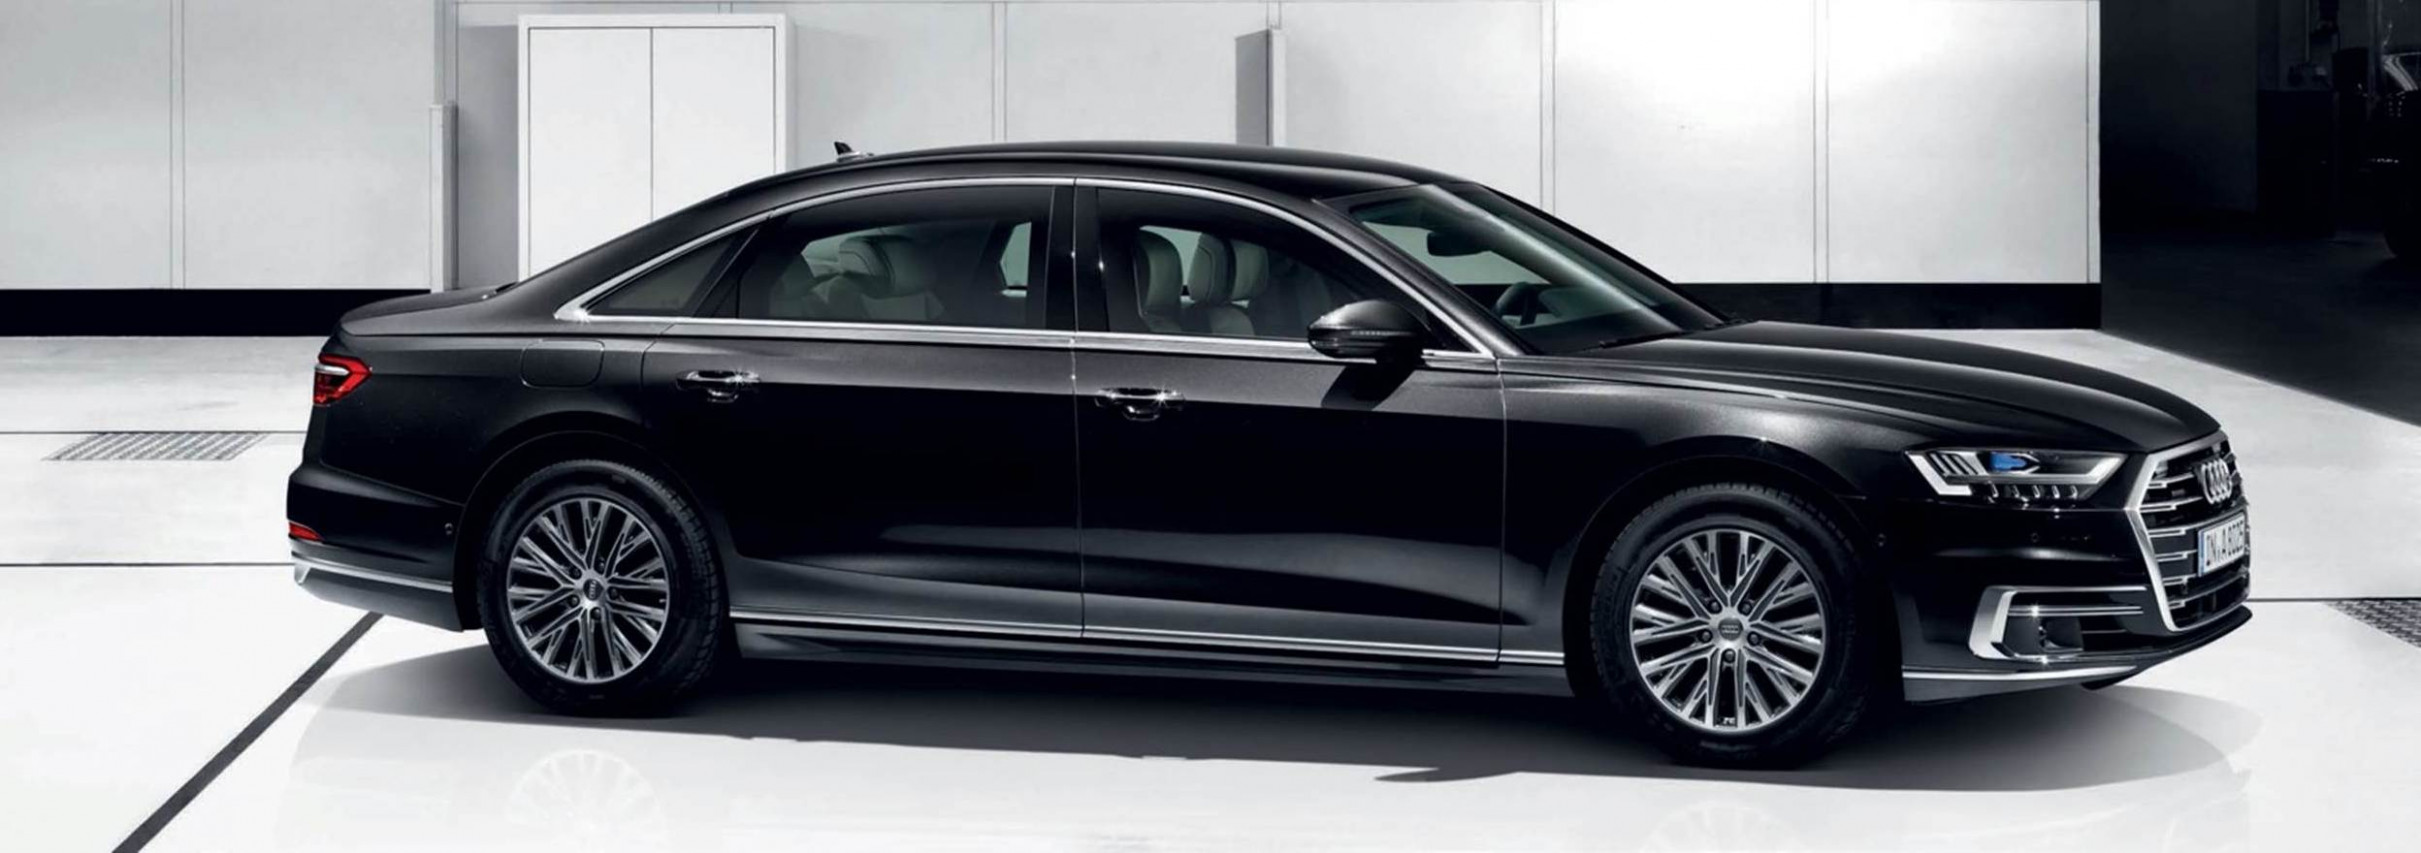 Review 2022 Audi A8 L In Usa